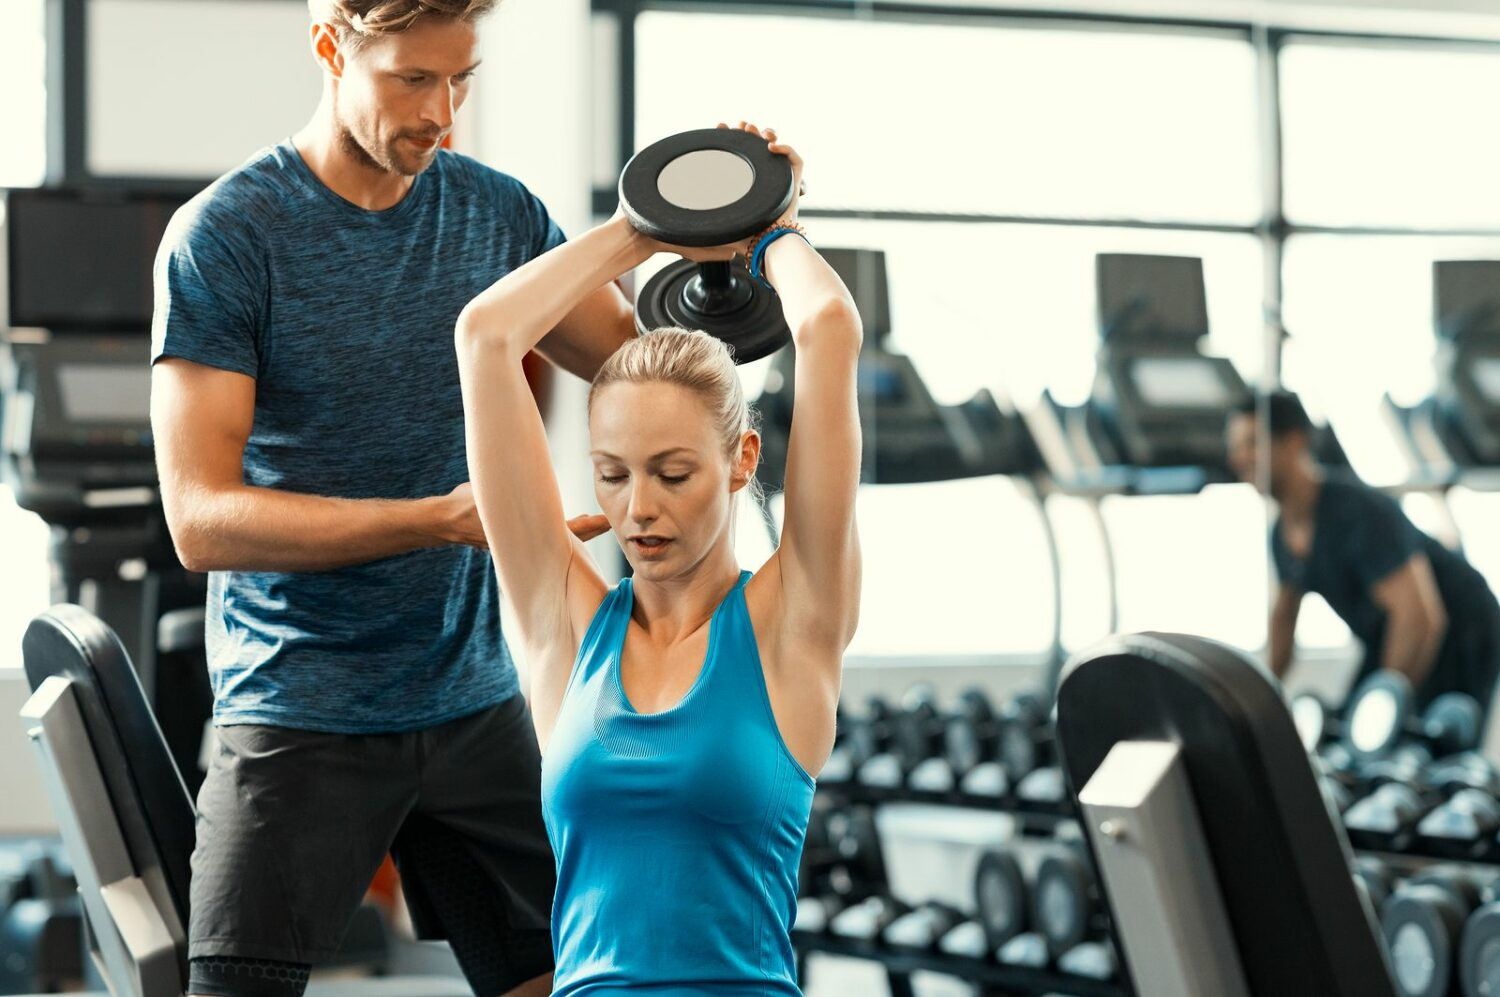 20 Best Franchise Gyms to Invest In – 2021 1